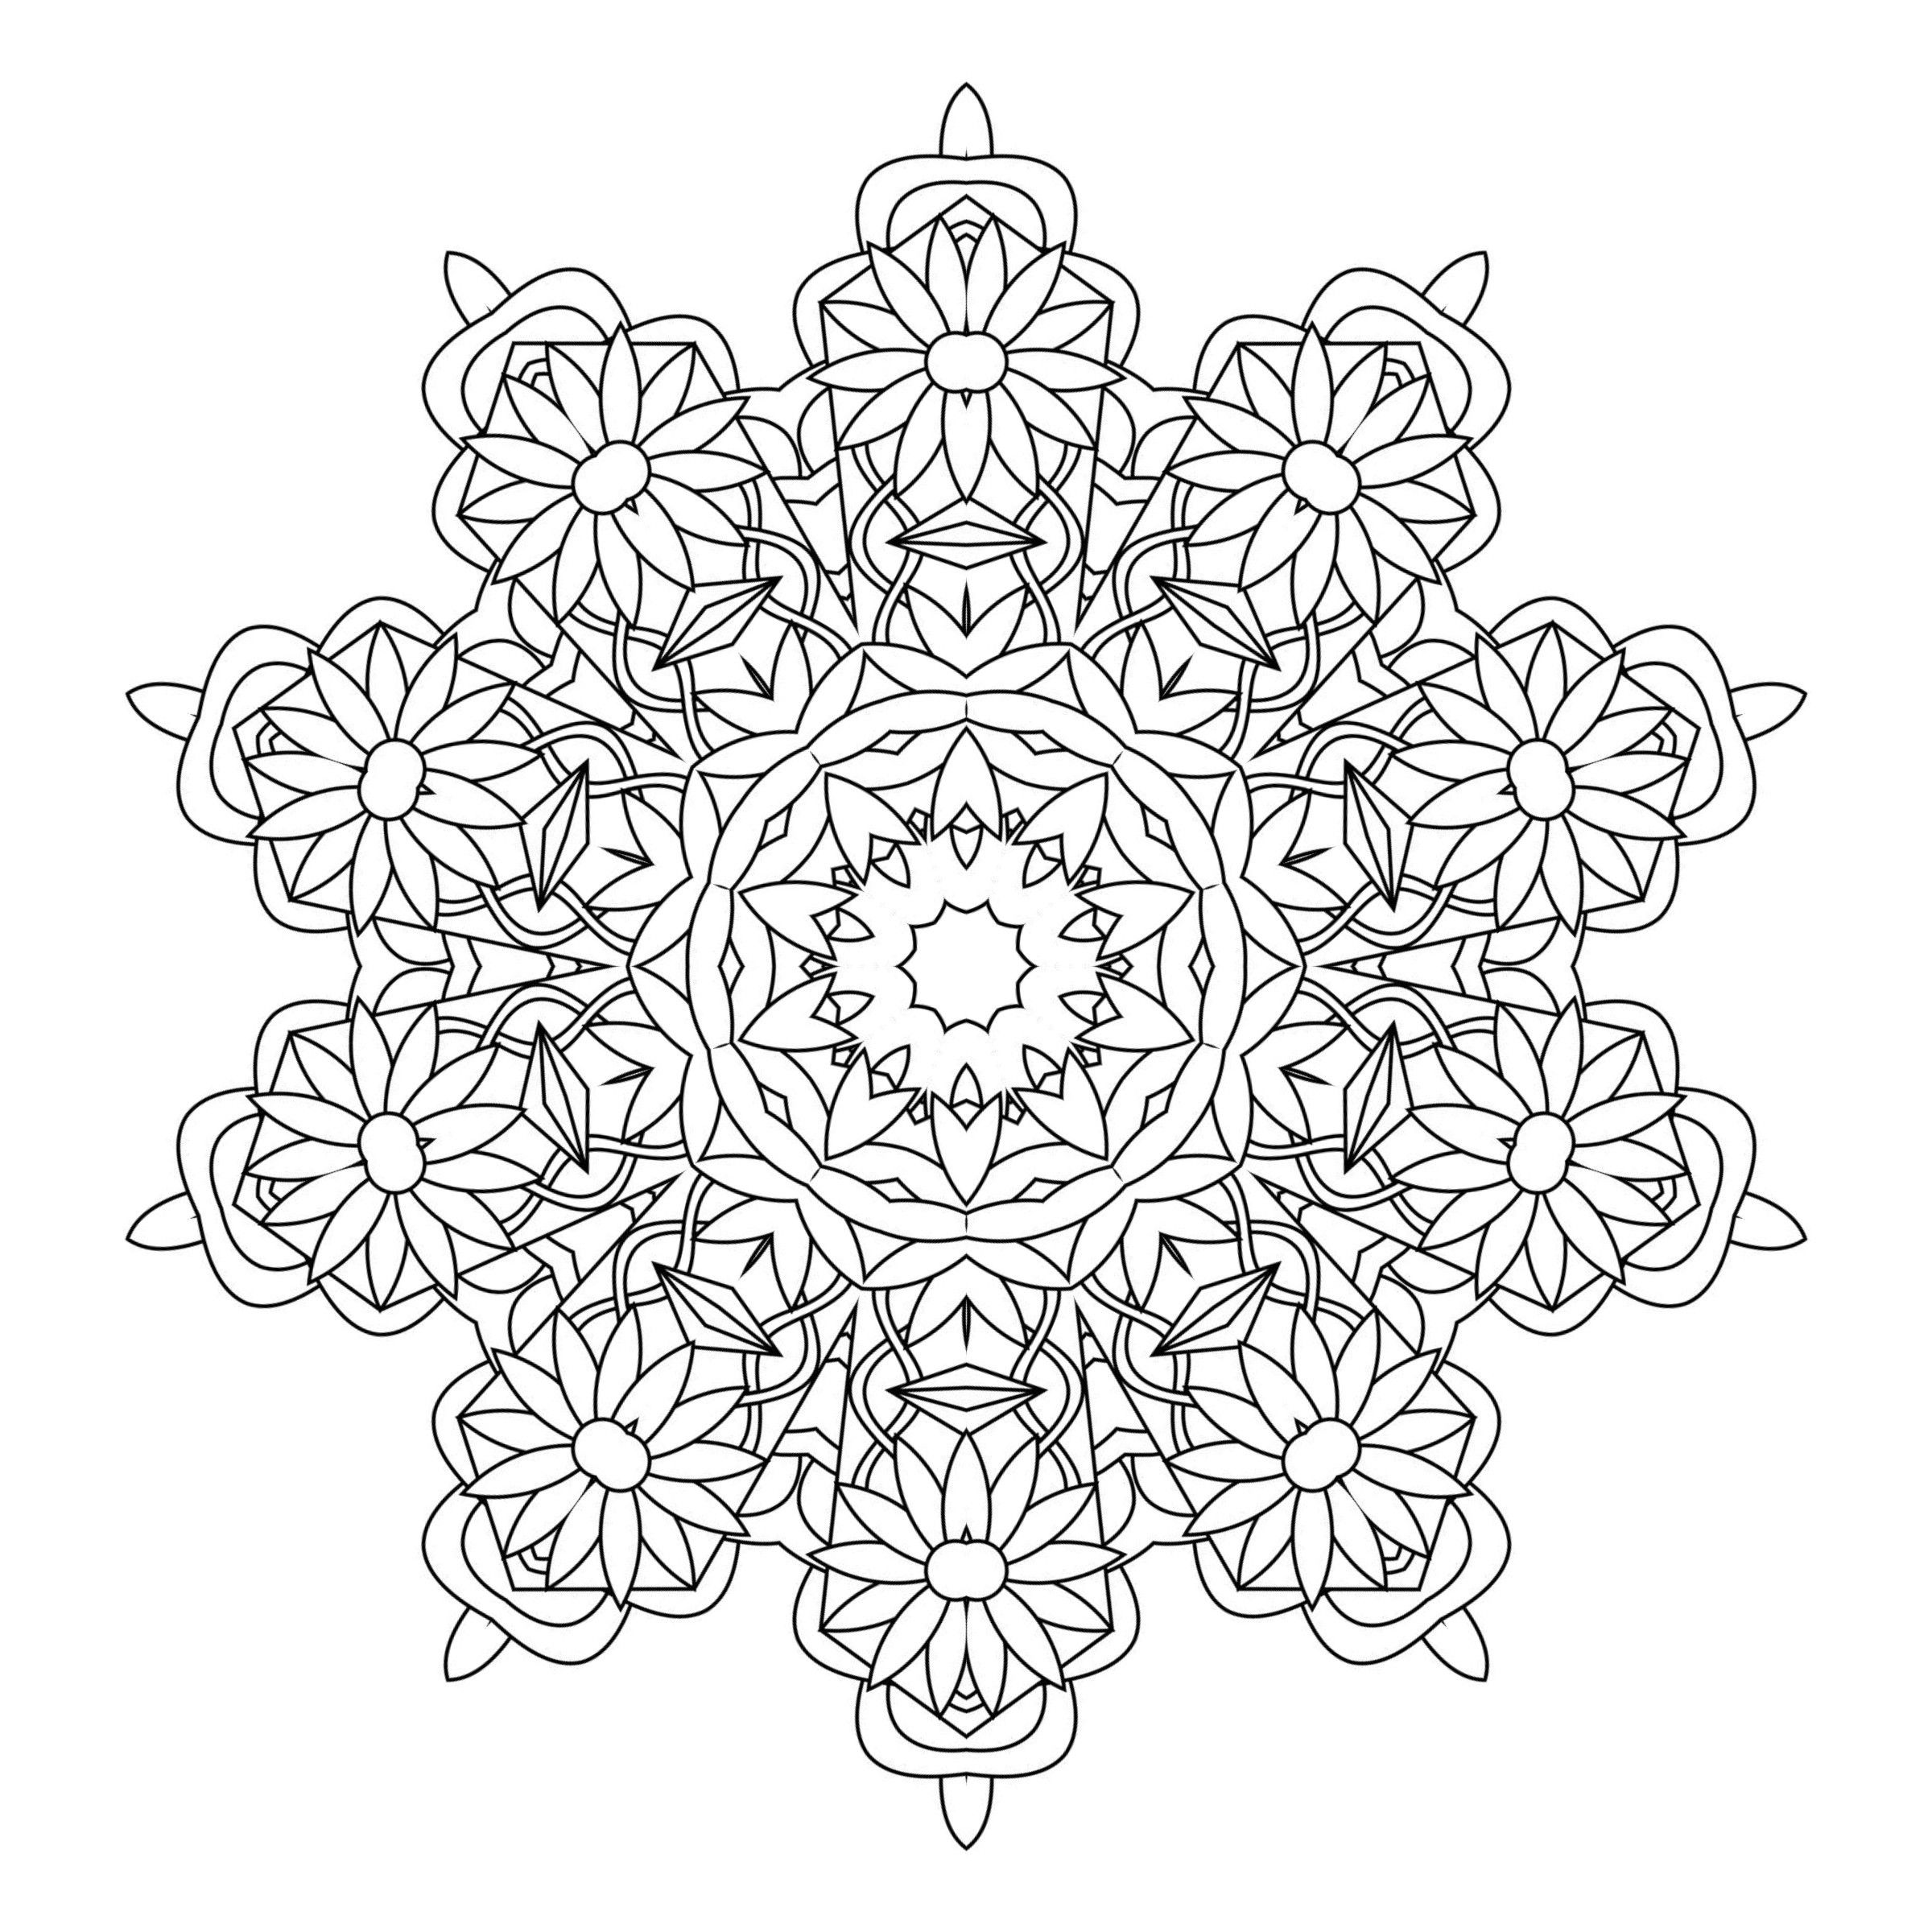 Kaleidoscope Coloring Page - Coloring Home